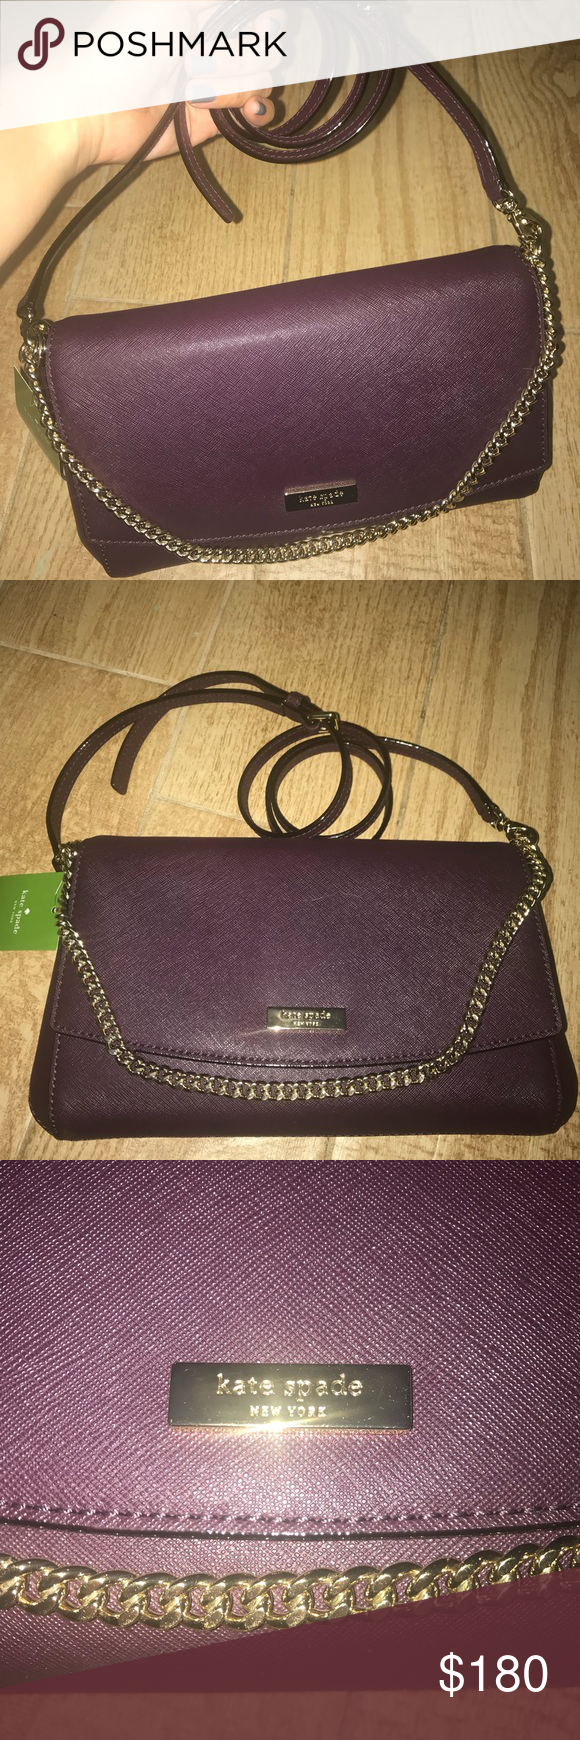 7c6d77fd7a00 Kate Spade Crossbody with Gold Chain Detail NWT Color is called Mahogany.  Looks more like